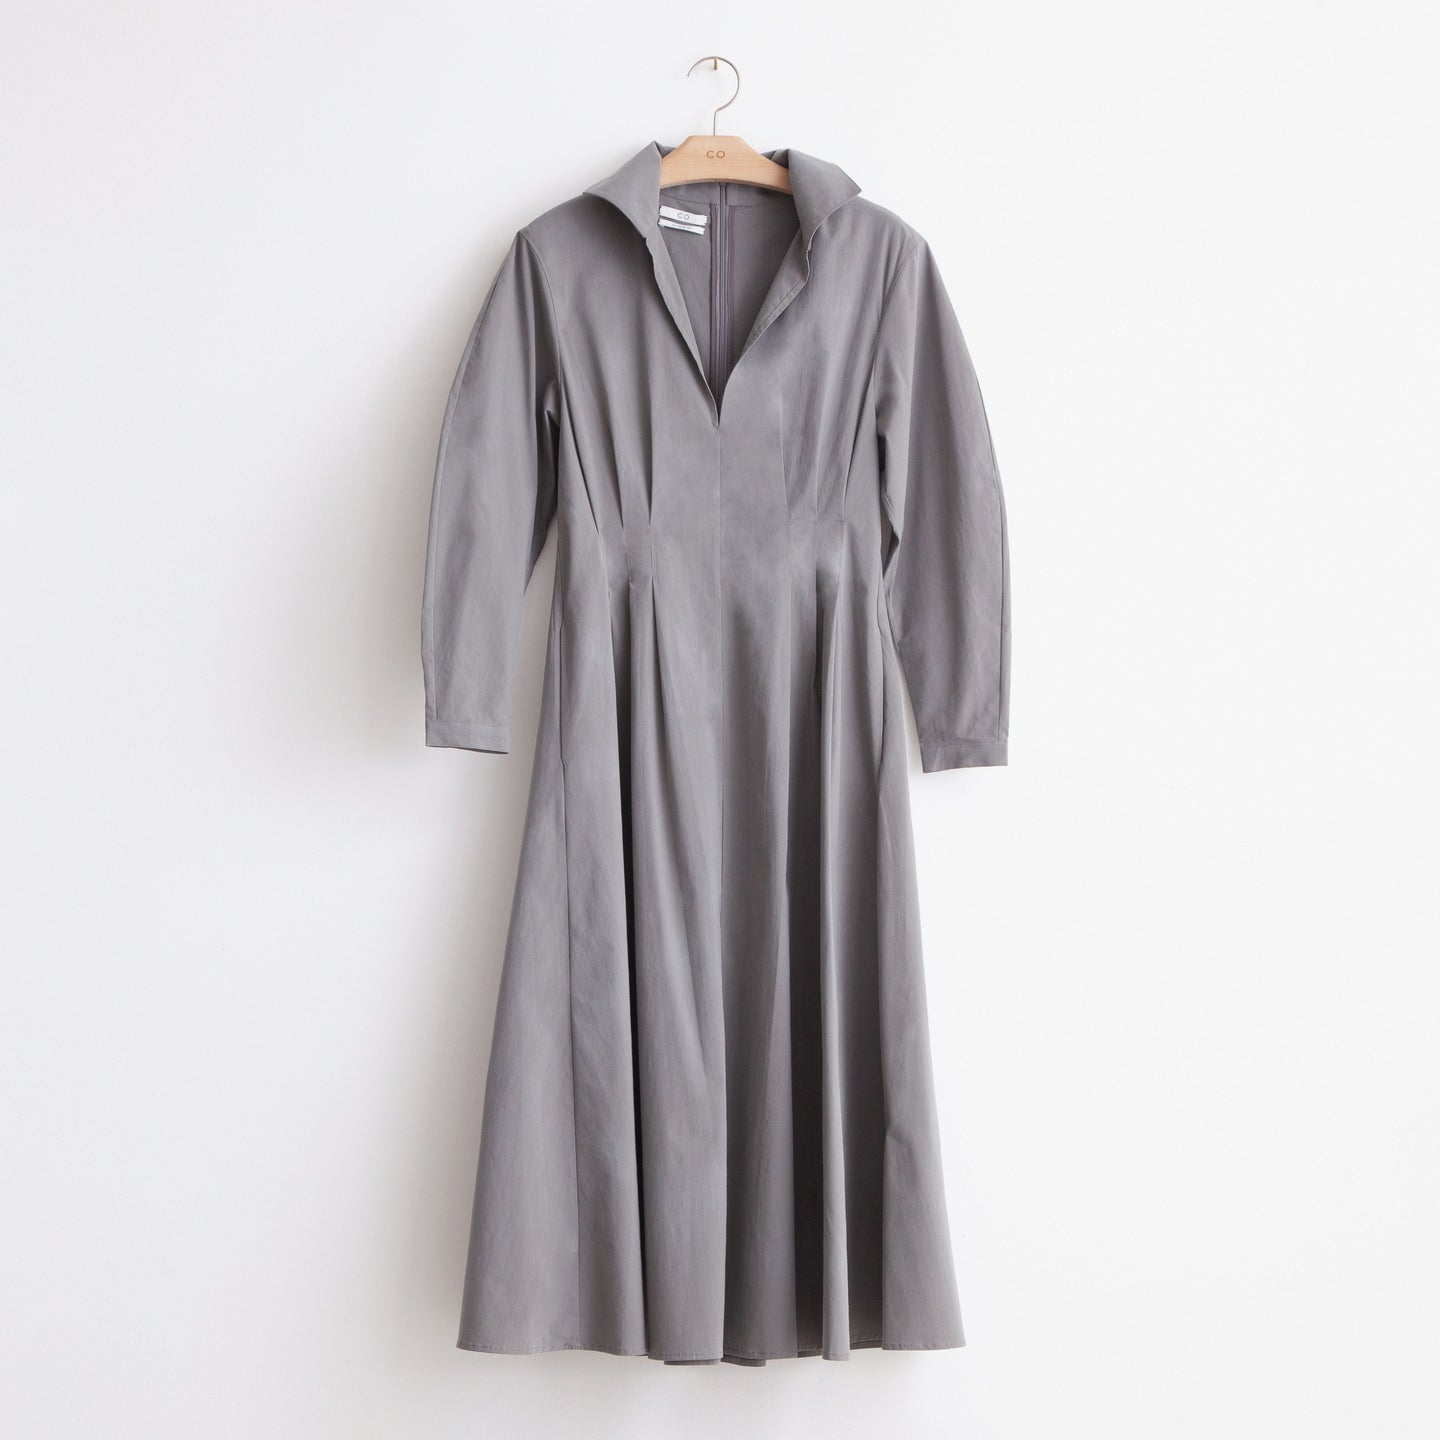 Long sleeve v neck midi dress in grey washed cotton - CO